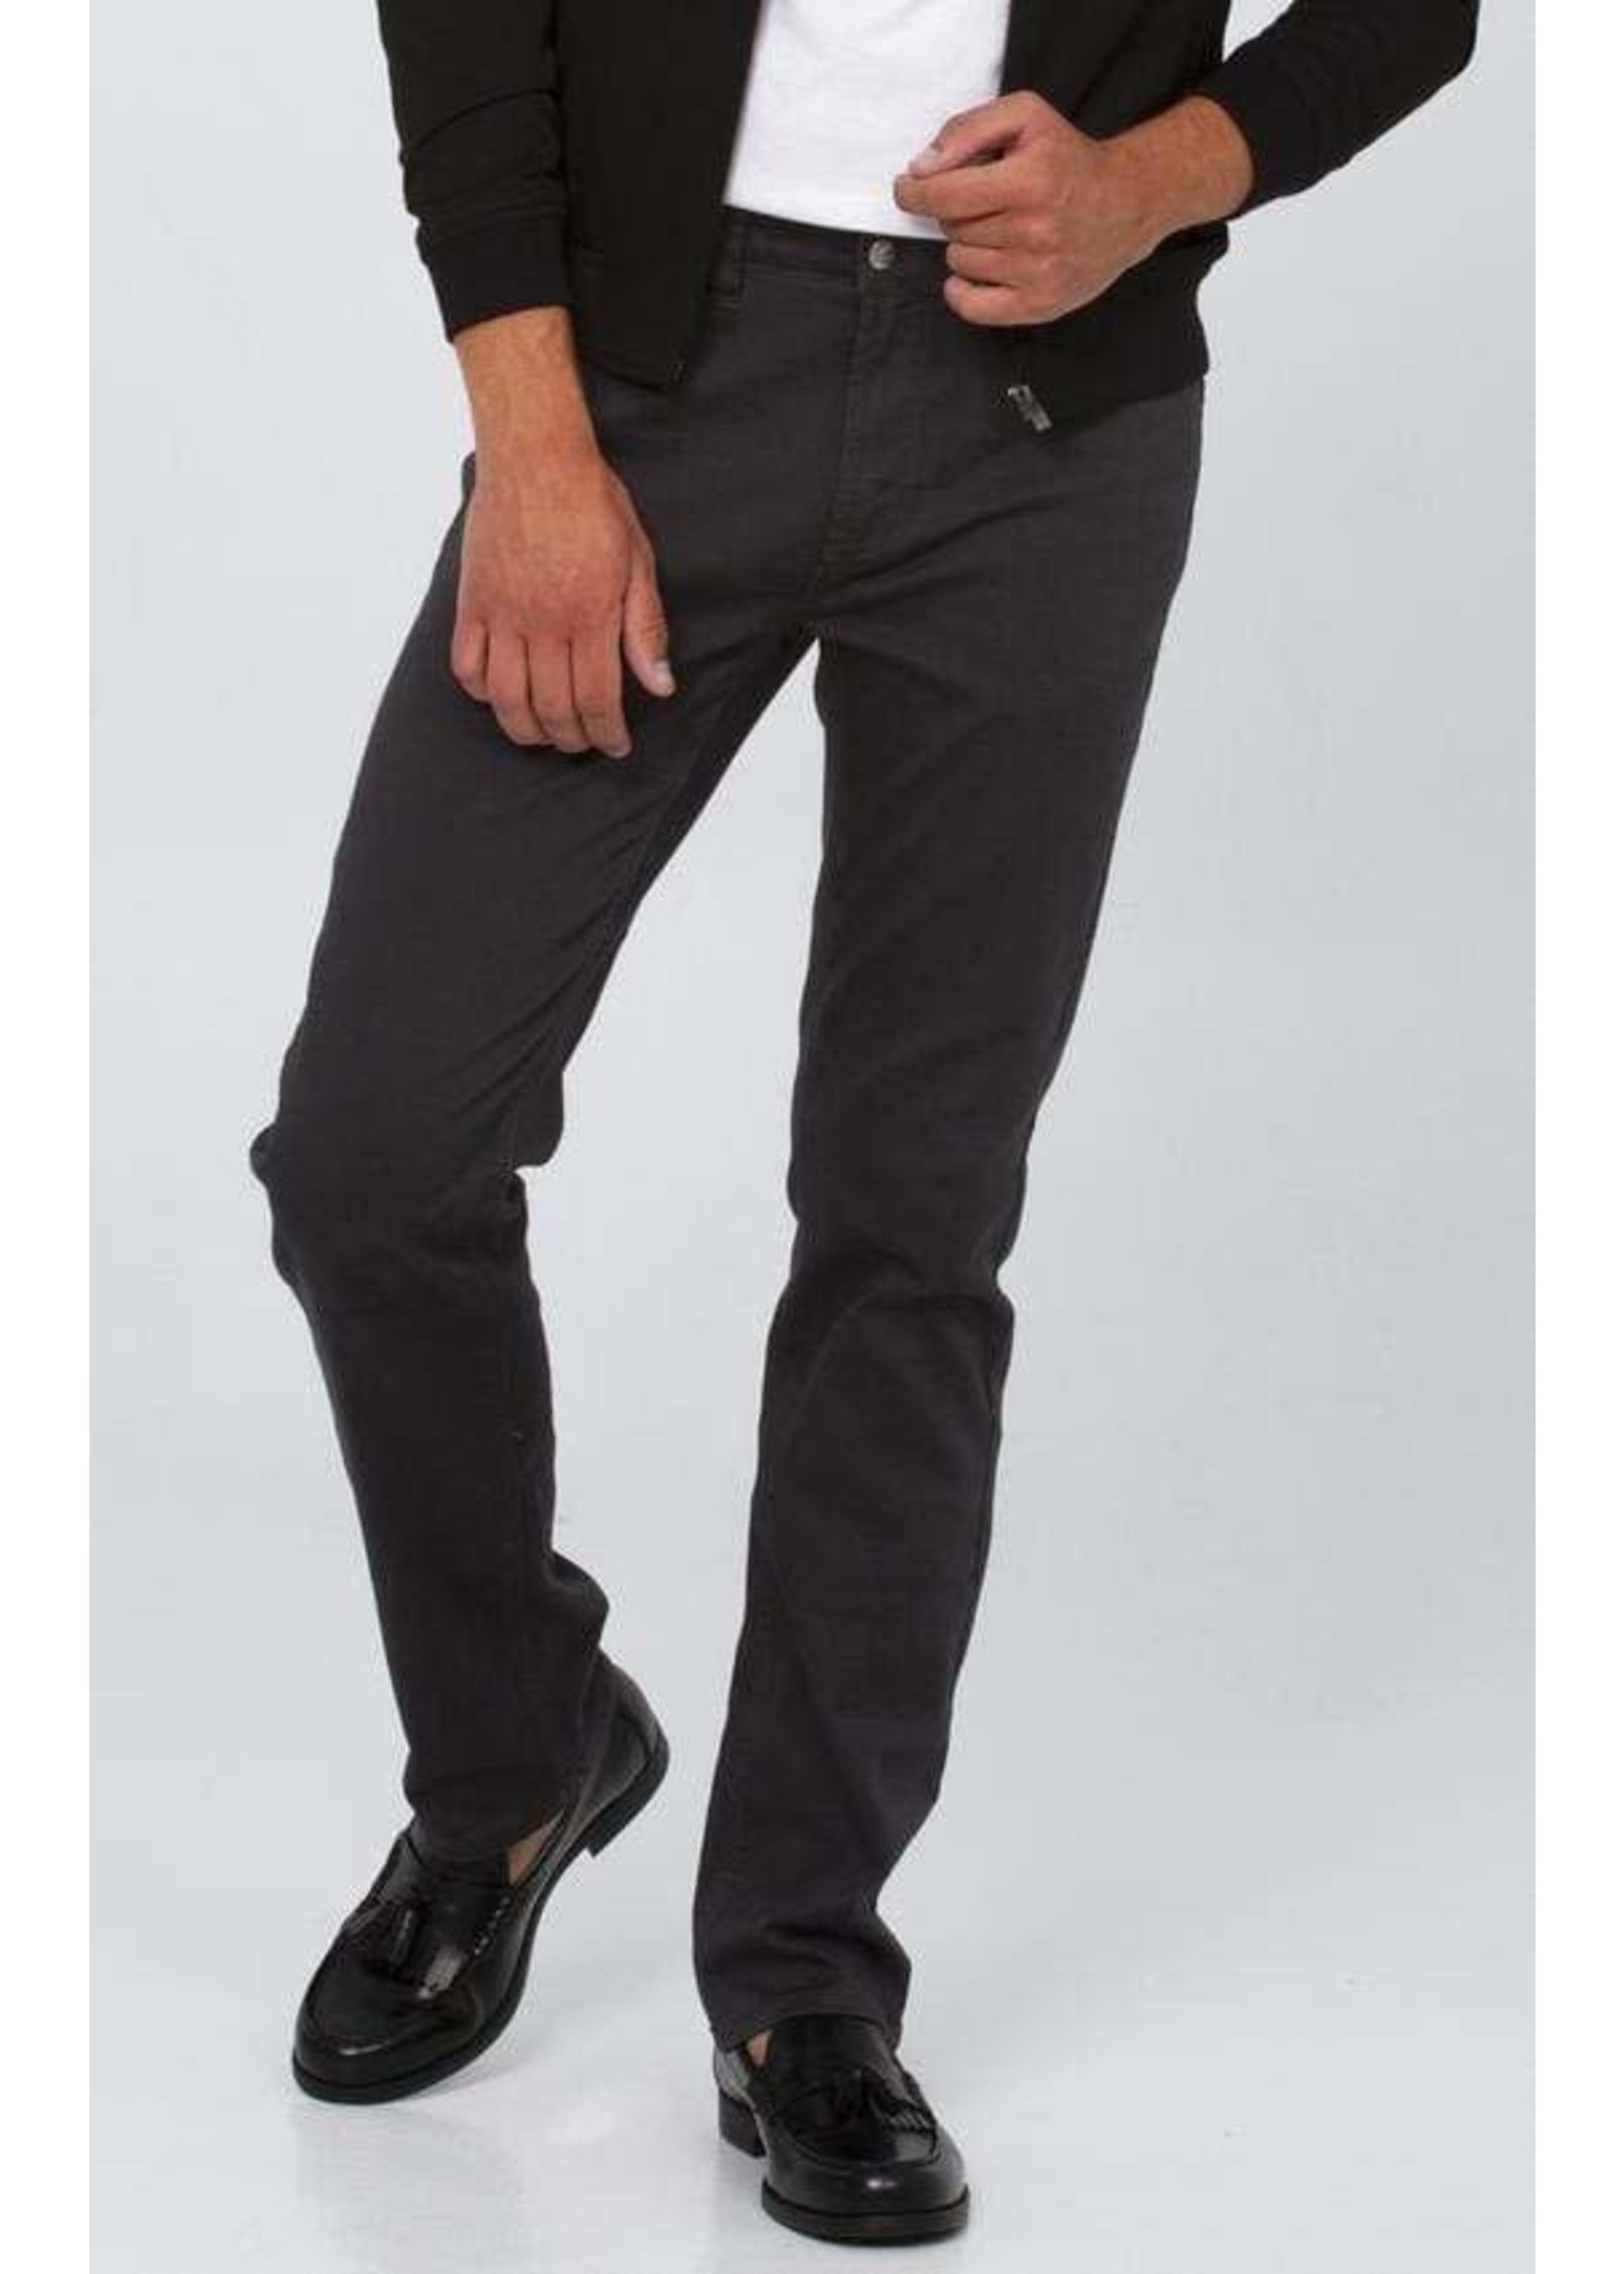 """Lois Jeans Canada The """"Brad Slim 6240-97"""" by Lois Jeans"""